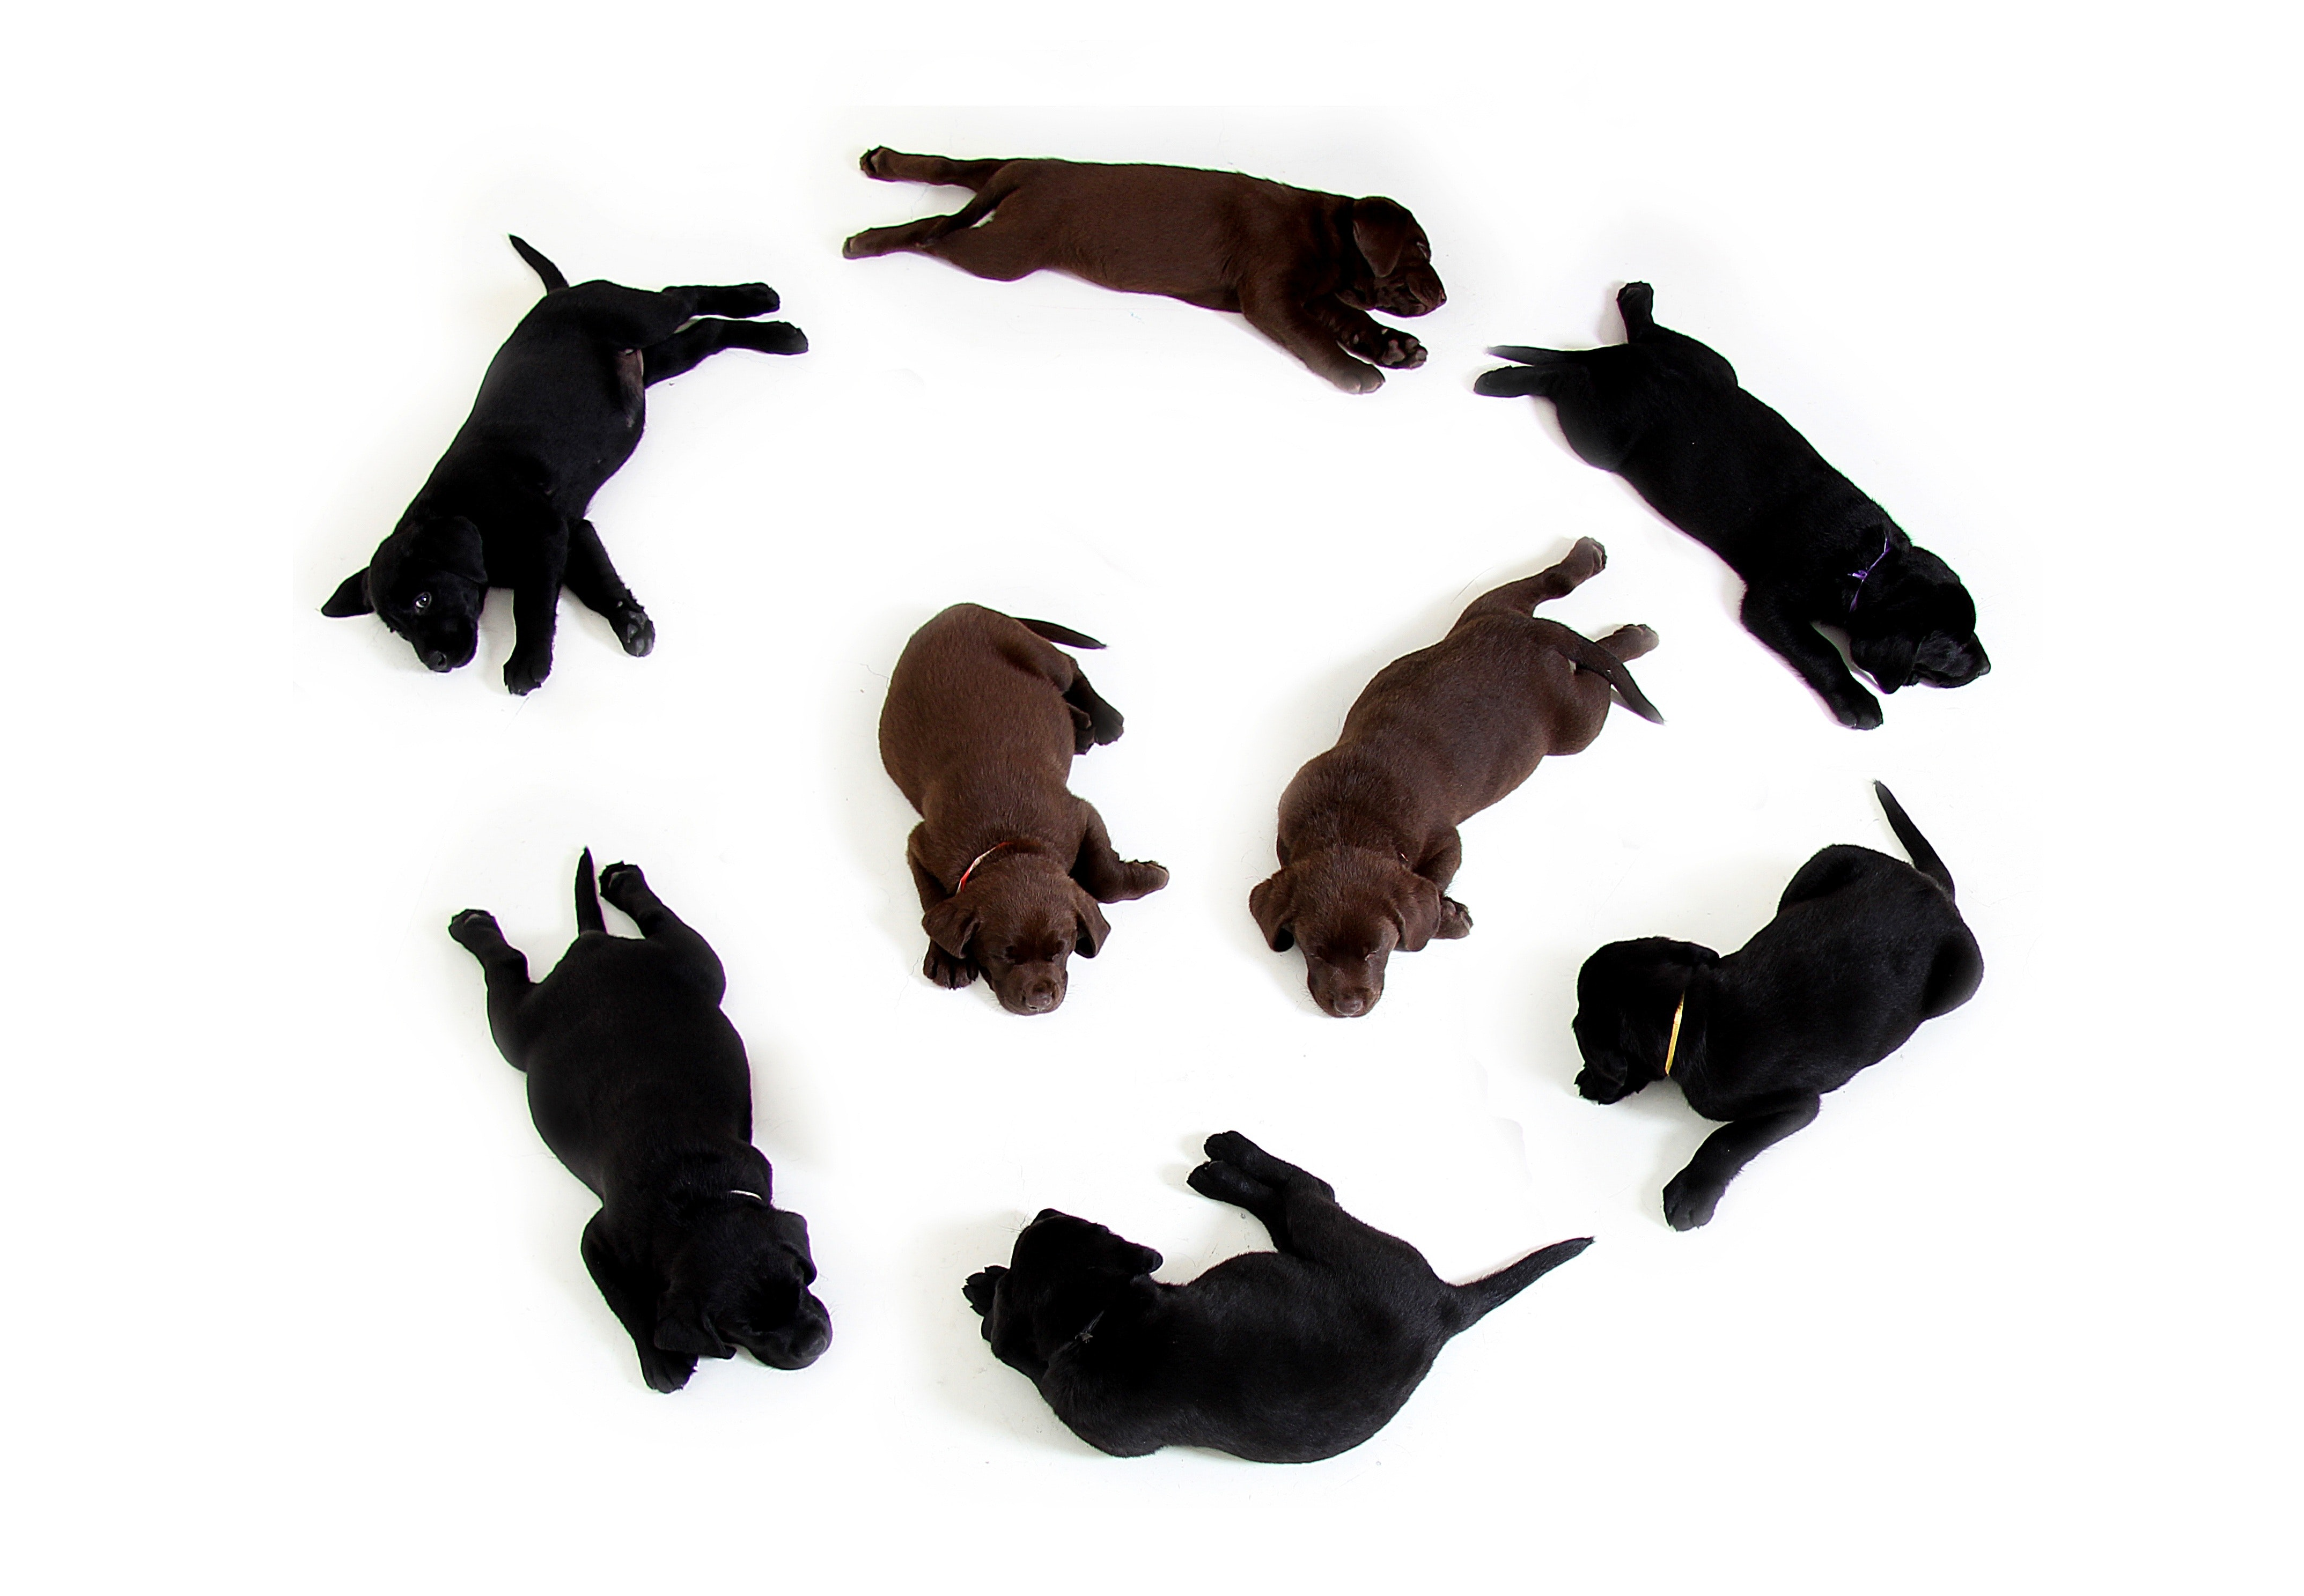 Black and Brown Labrador Puppies in a Circle Formation With 2 in the Middle, Pup, Pets, Mammal, Puppies, HQ Photo